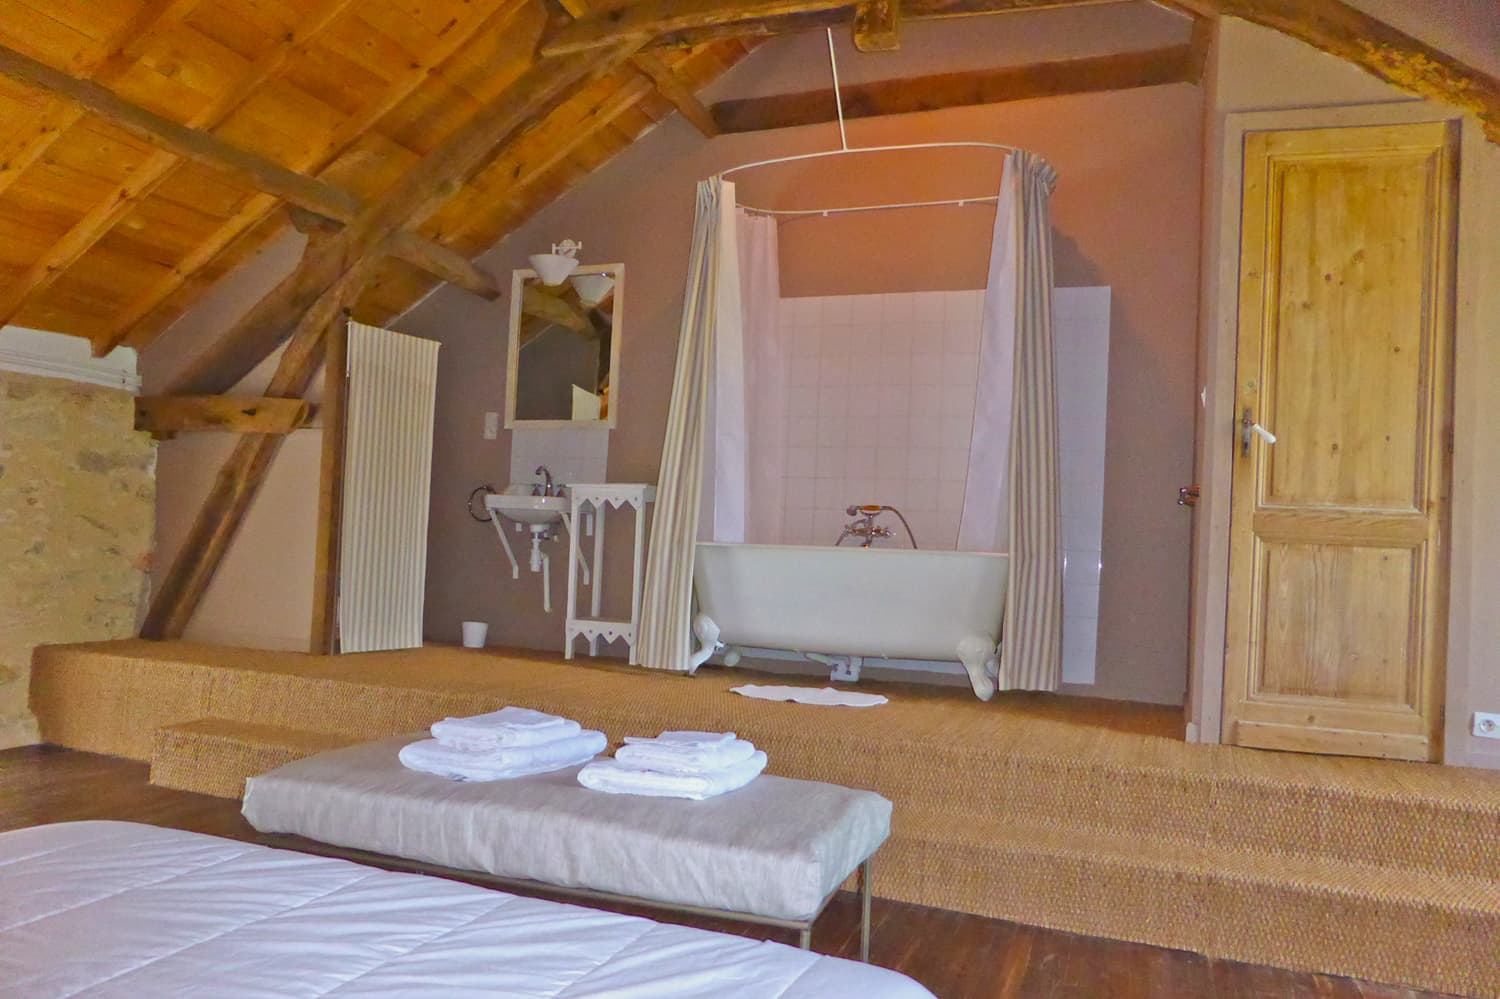 Bedroom with ensuite bathroom in Dordogne self-catering accommodation